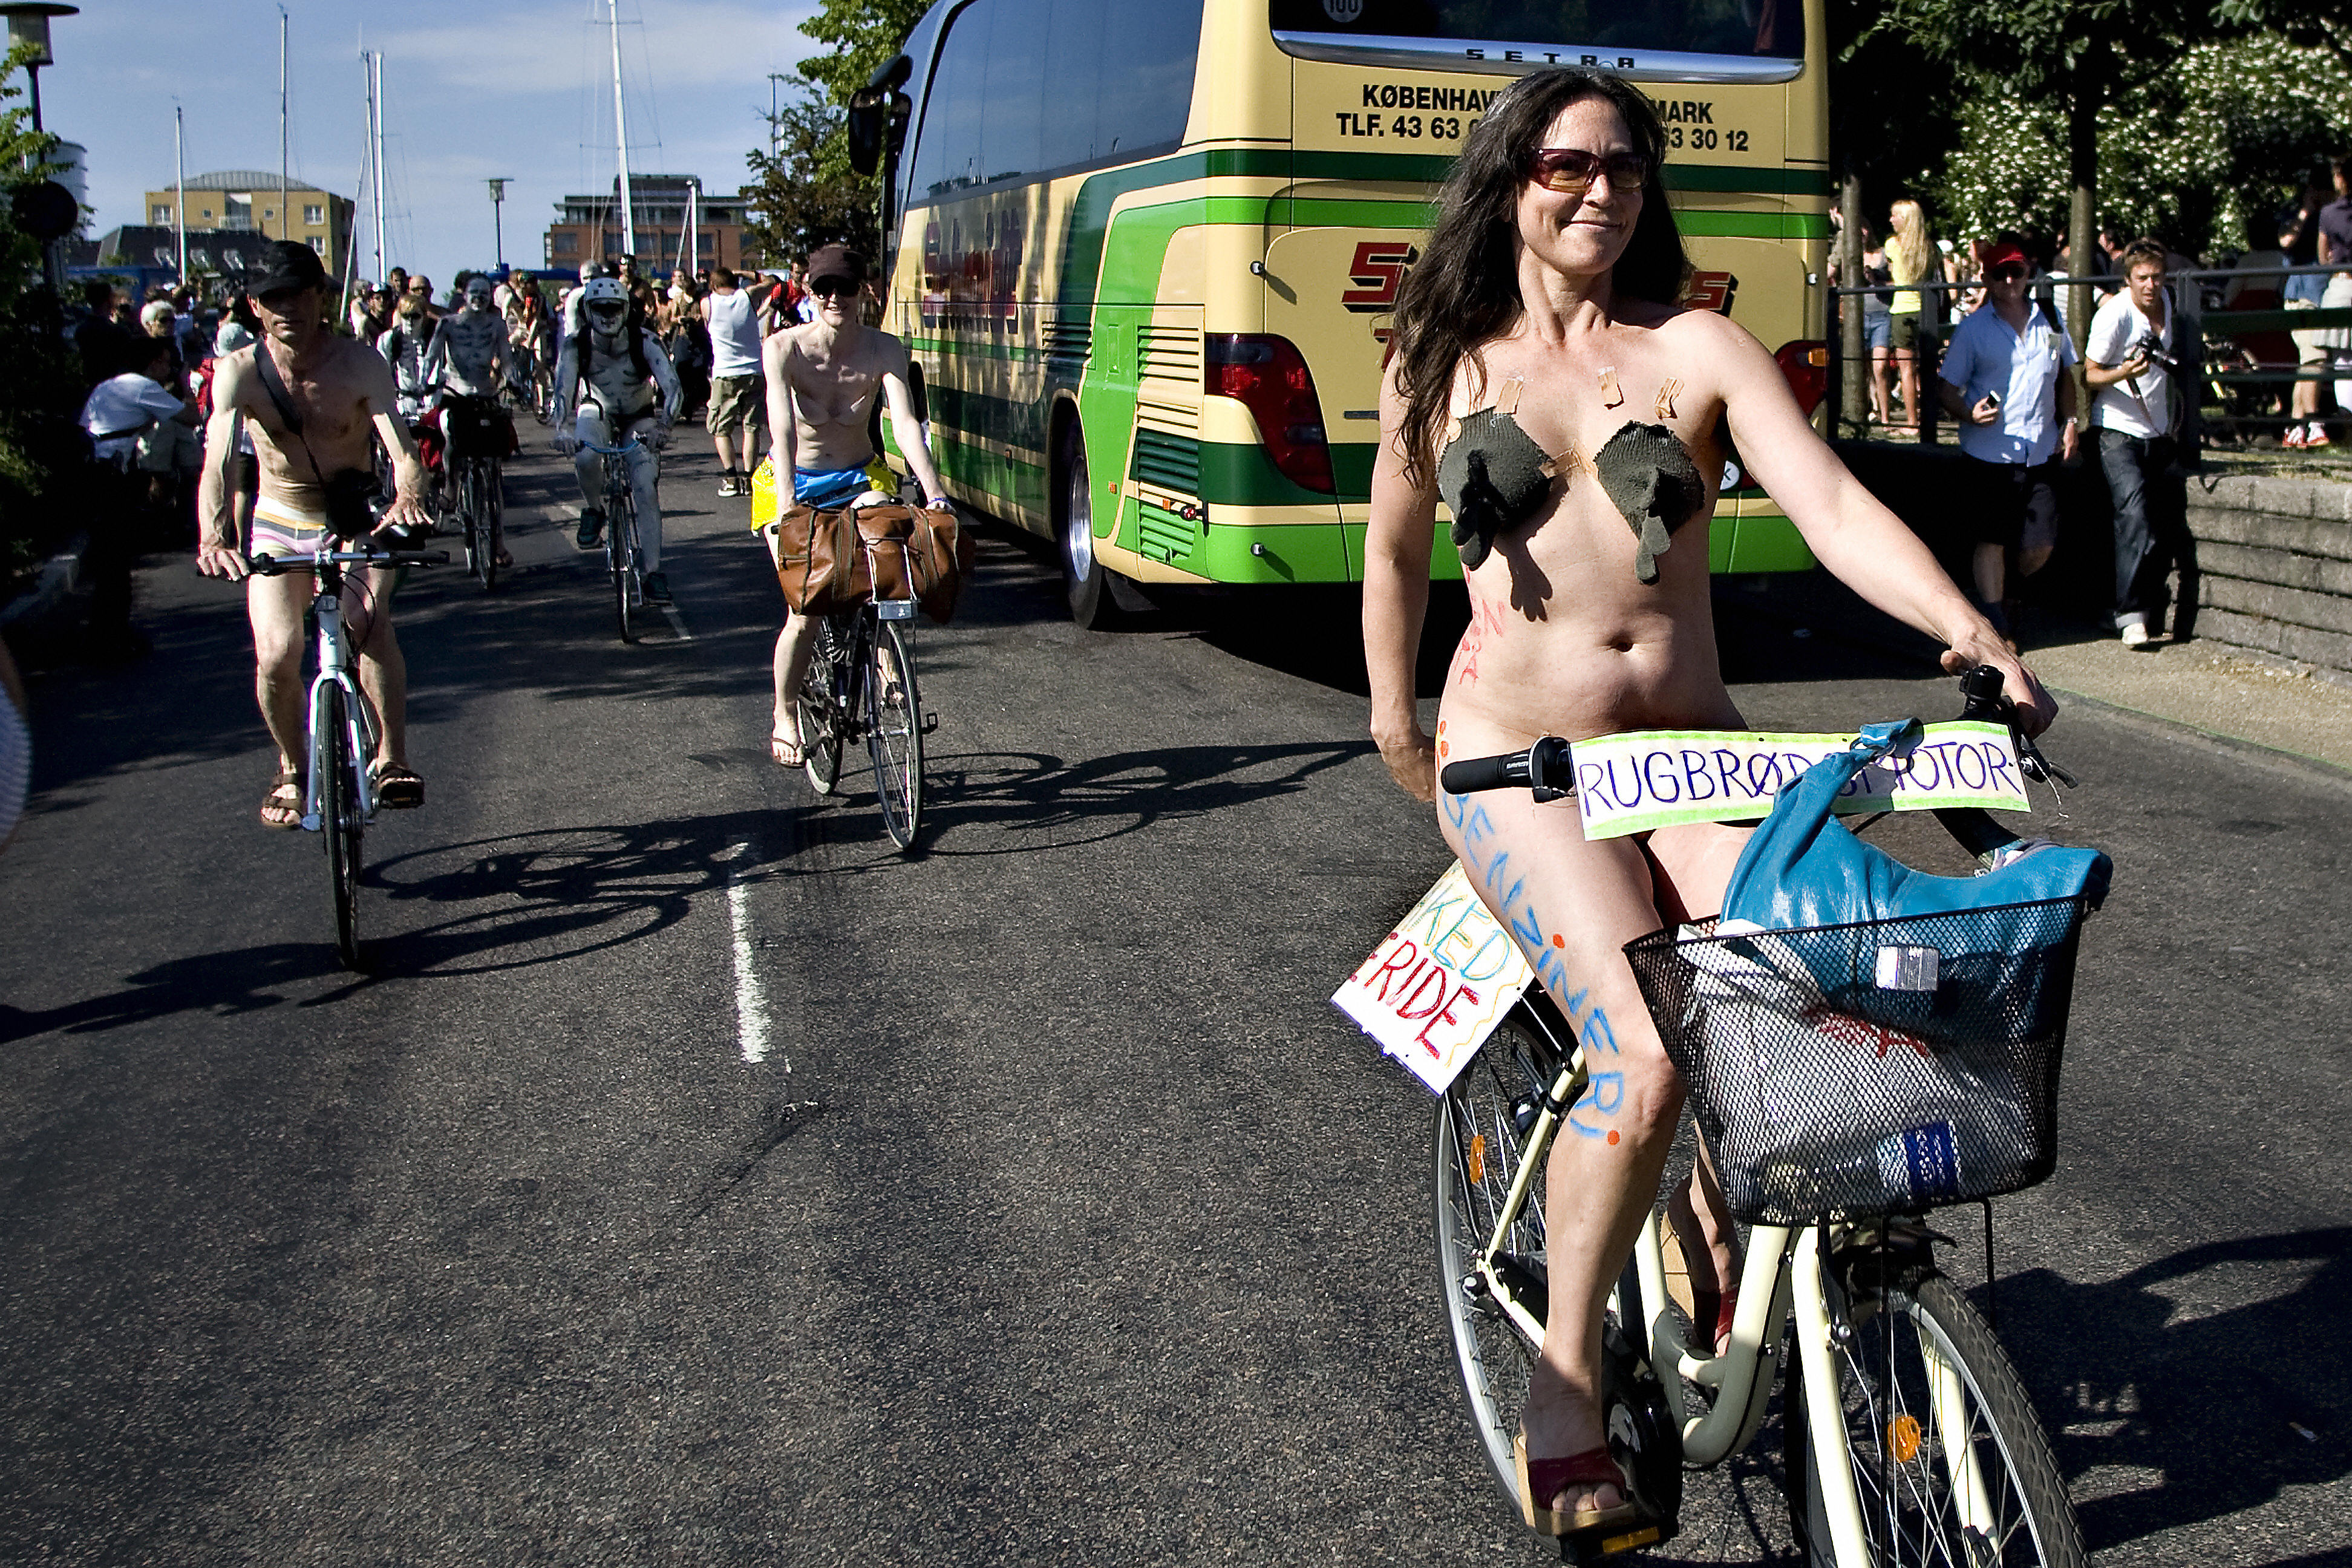 World Naked Biking Day in Copenhagen, Denmark.